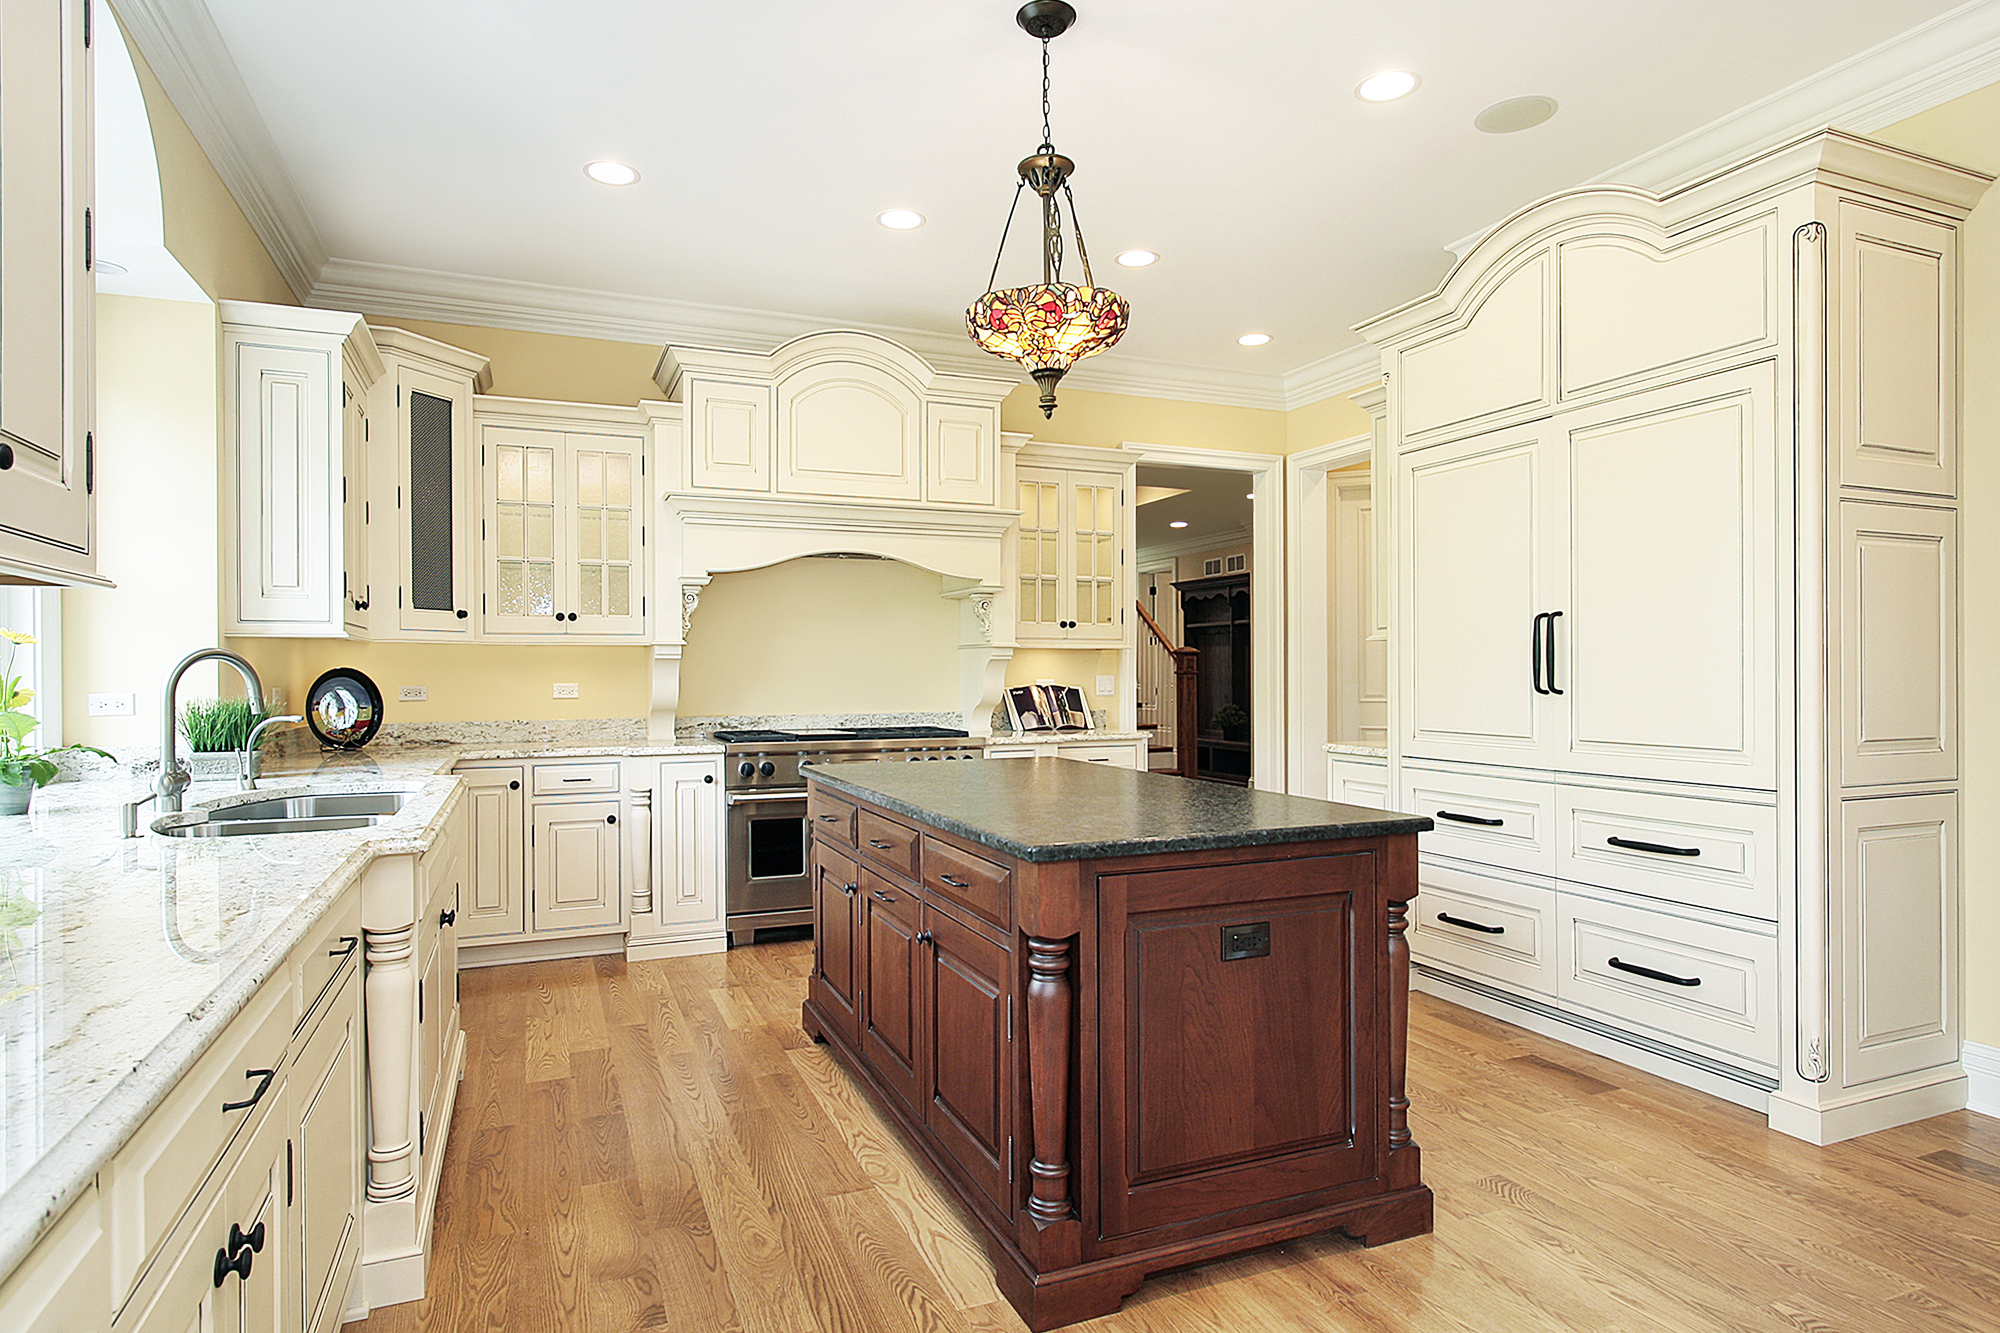 White Refaced Wood Cabinets